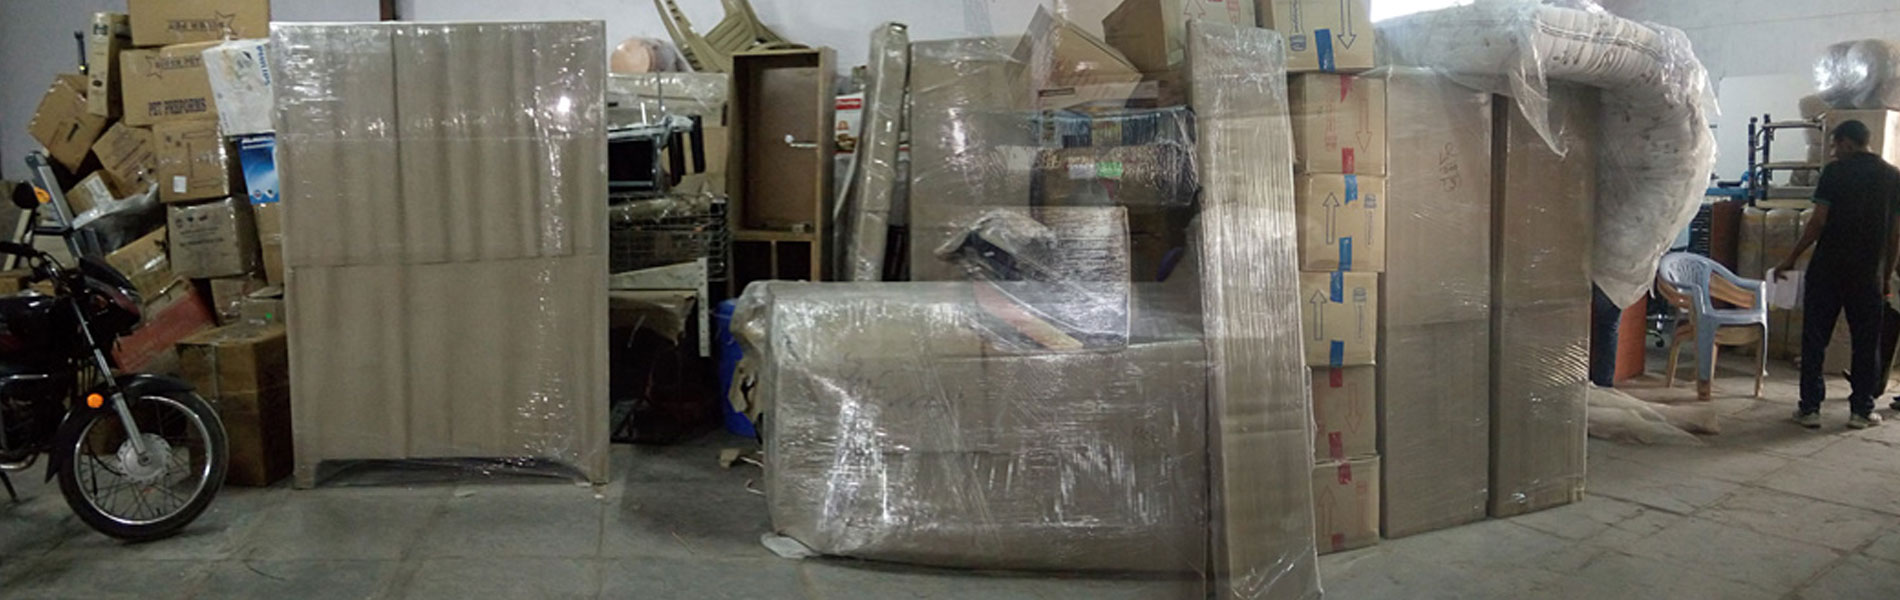 Packers And Movers in Vikhroli West Mumbai